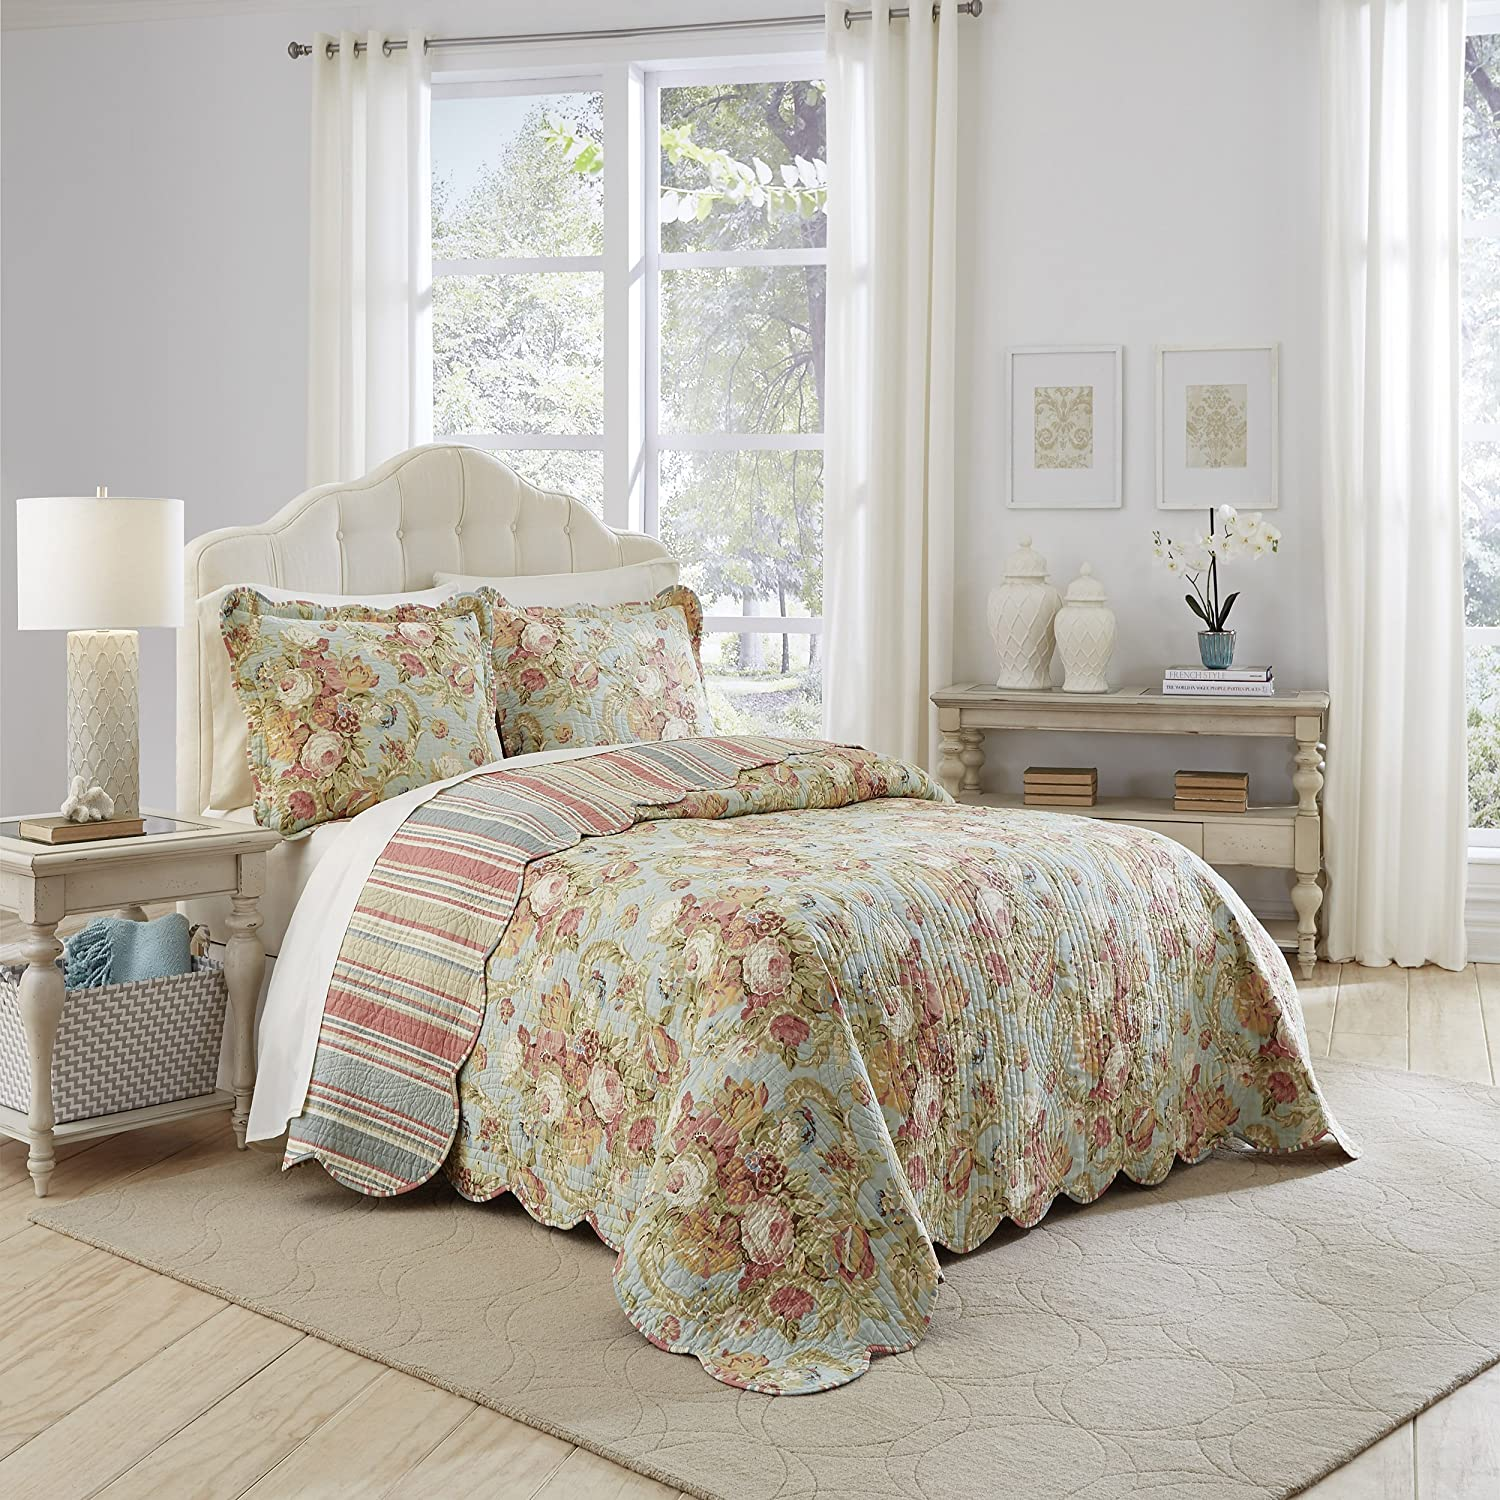 WAVERLY Spring Bling Bedspread Collection, 96x110, Vapor Ellery Homestyles 15967BEDDQUEVPR